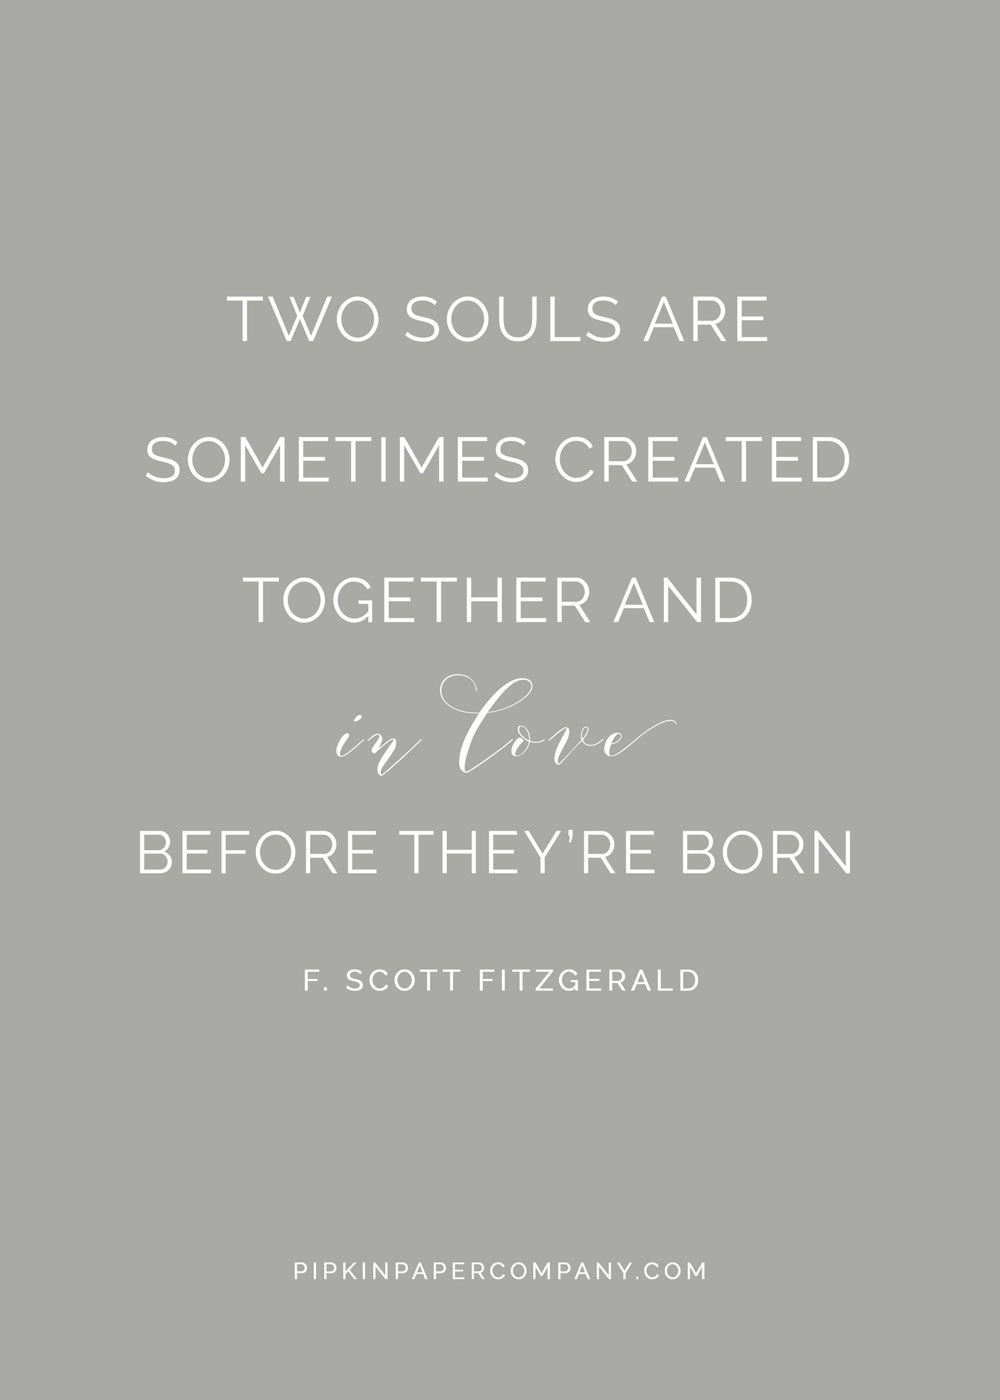 two souls are sometime created together and in love before they're